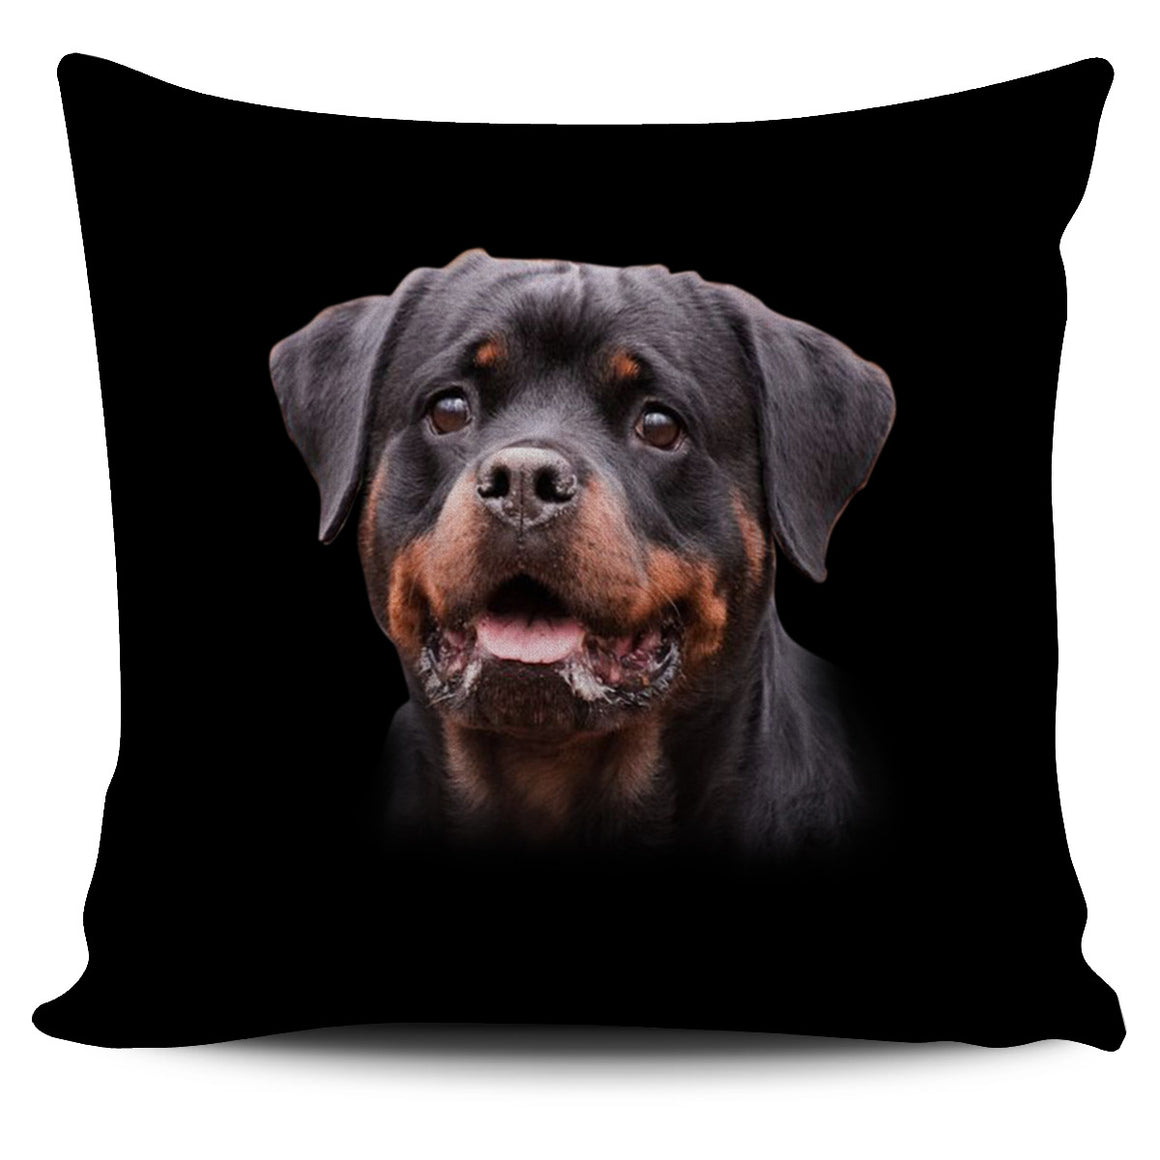 Rottweiler Black Themed Pillow Cover